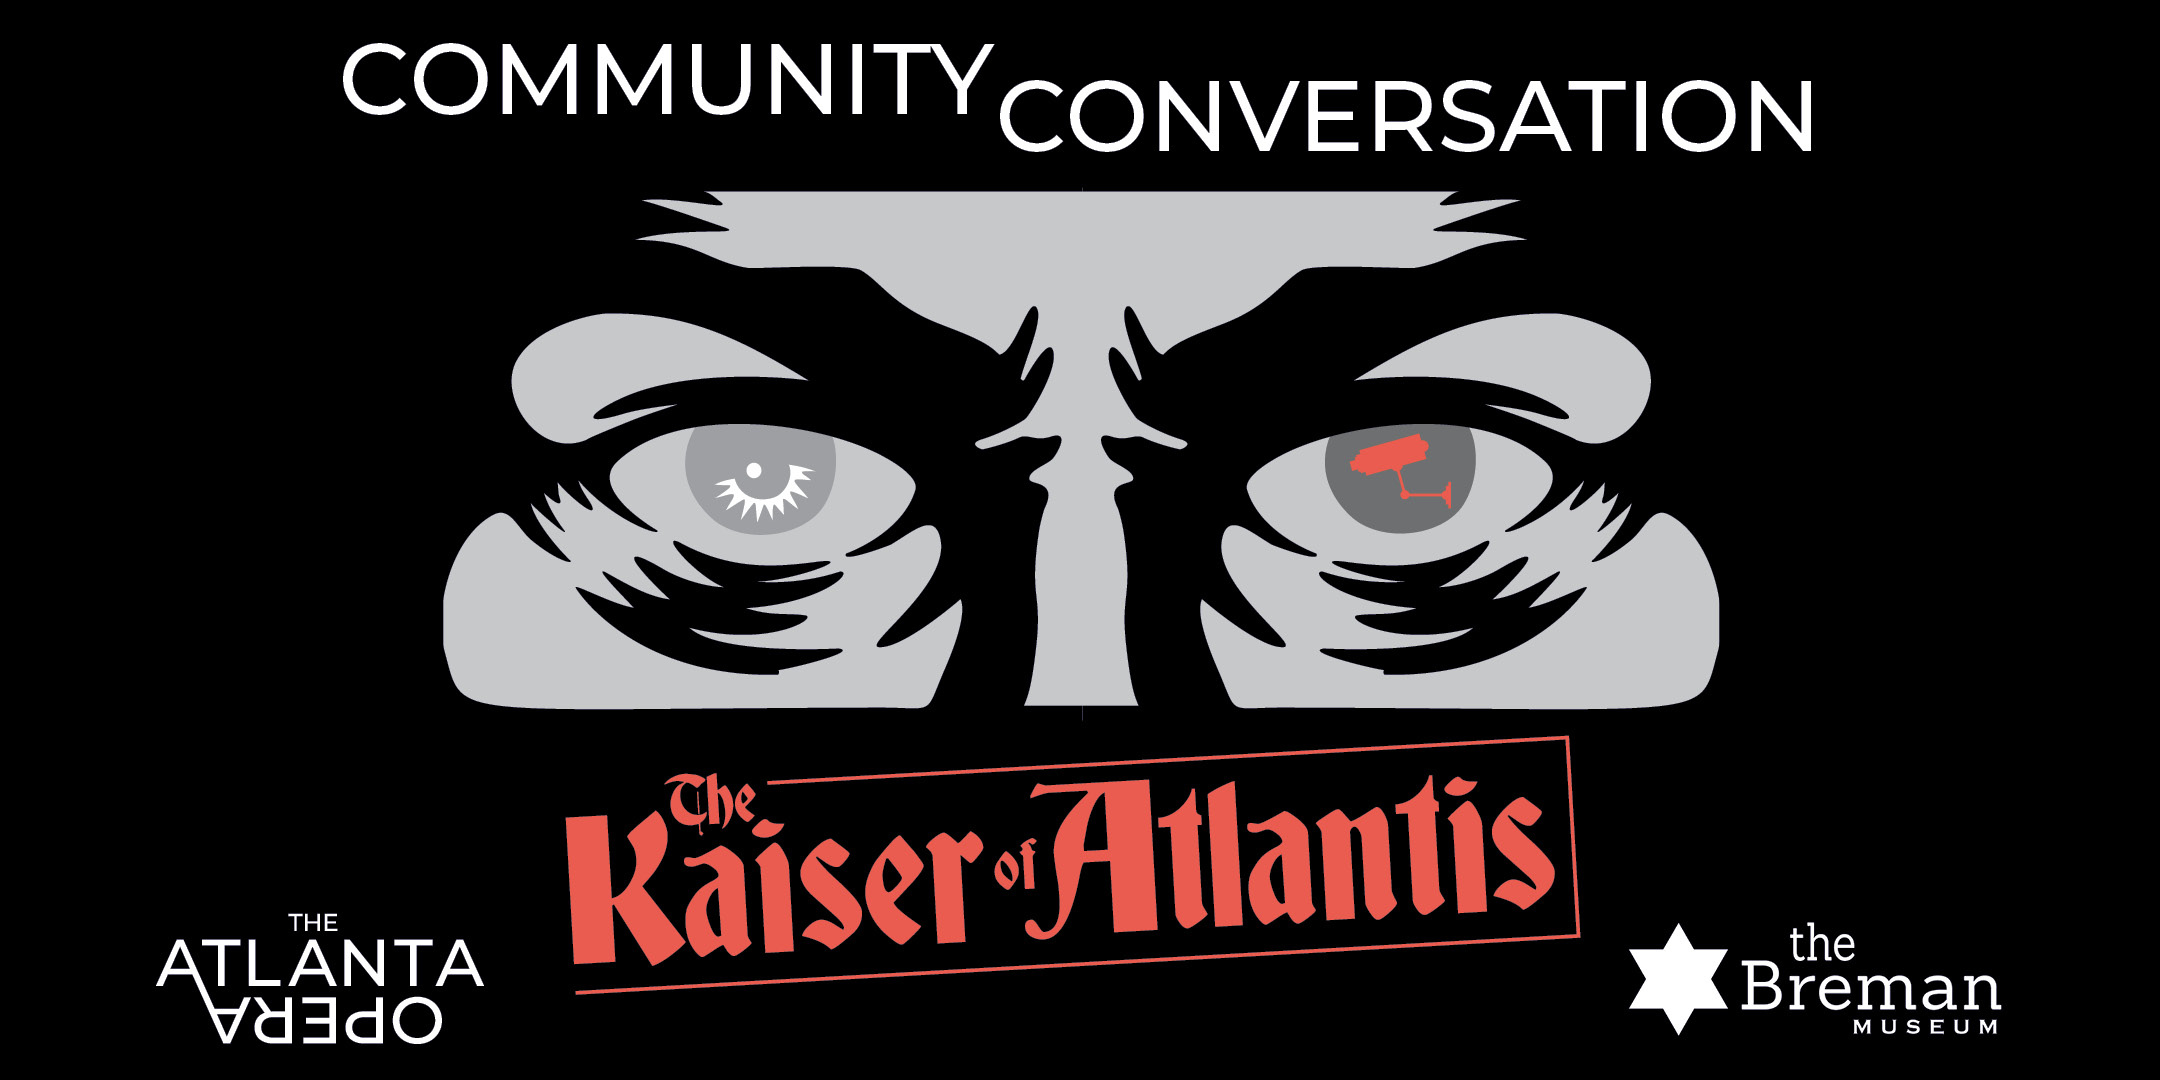 Community Conversation: The Kaiser of Atlantis